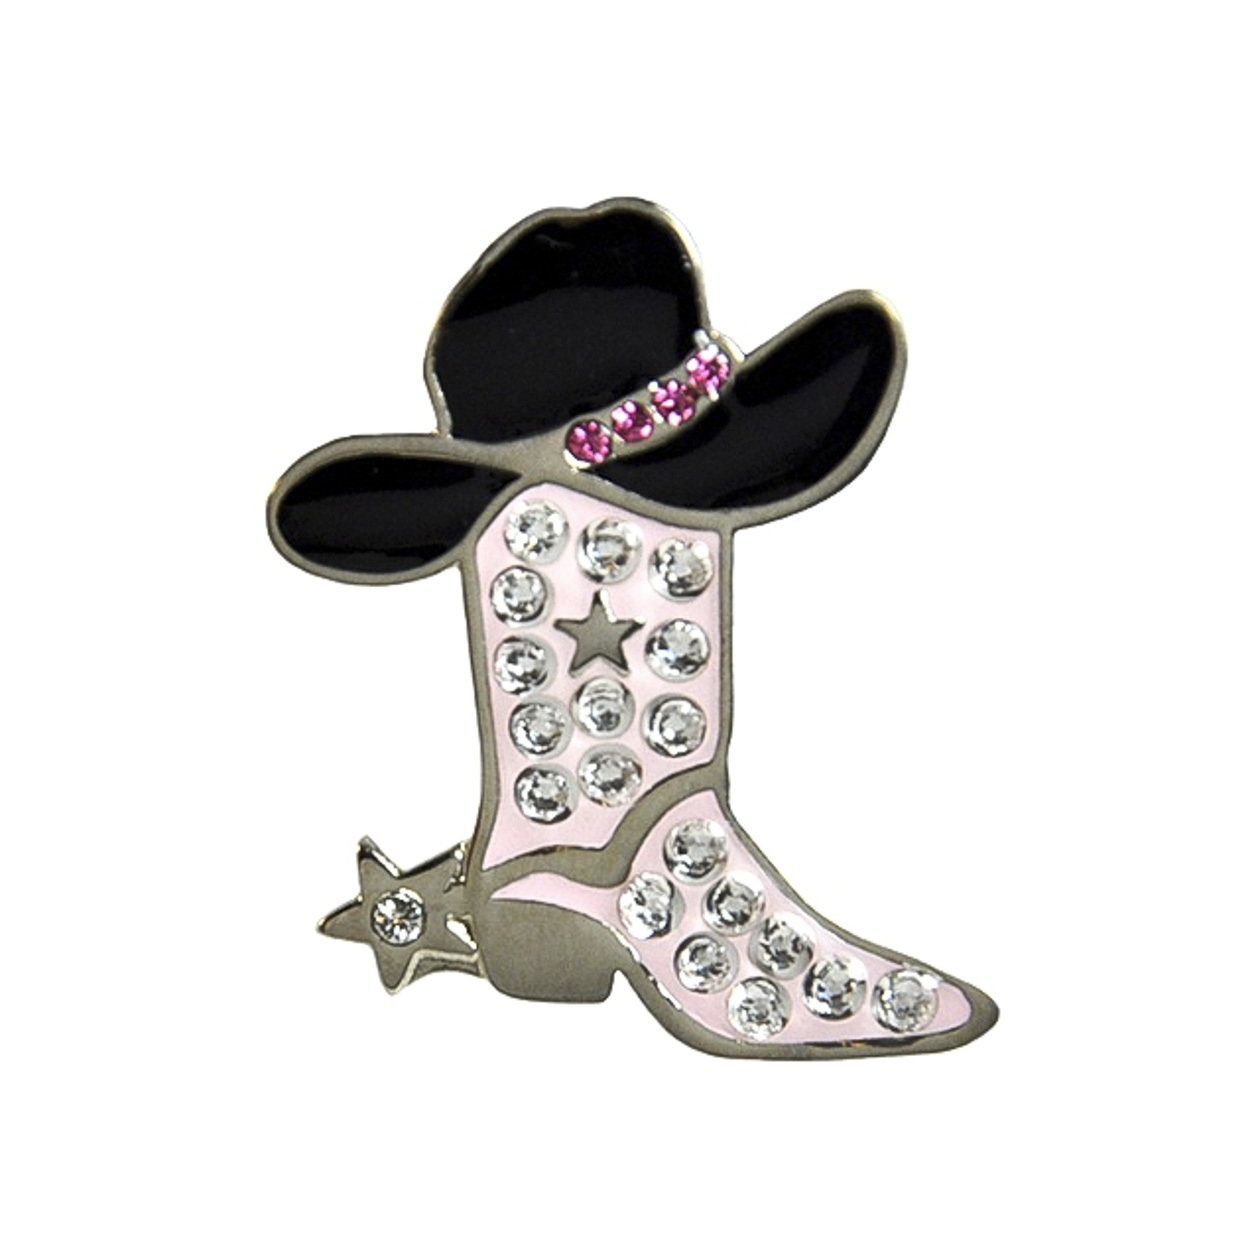 141. Cowgirl Boot Pink